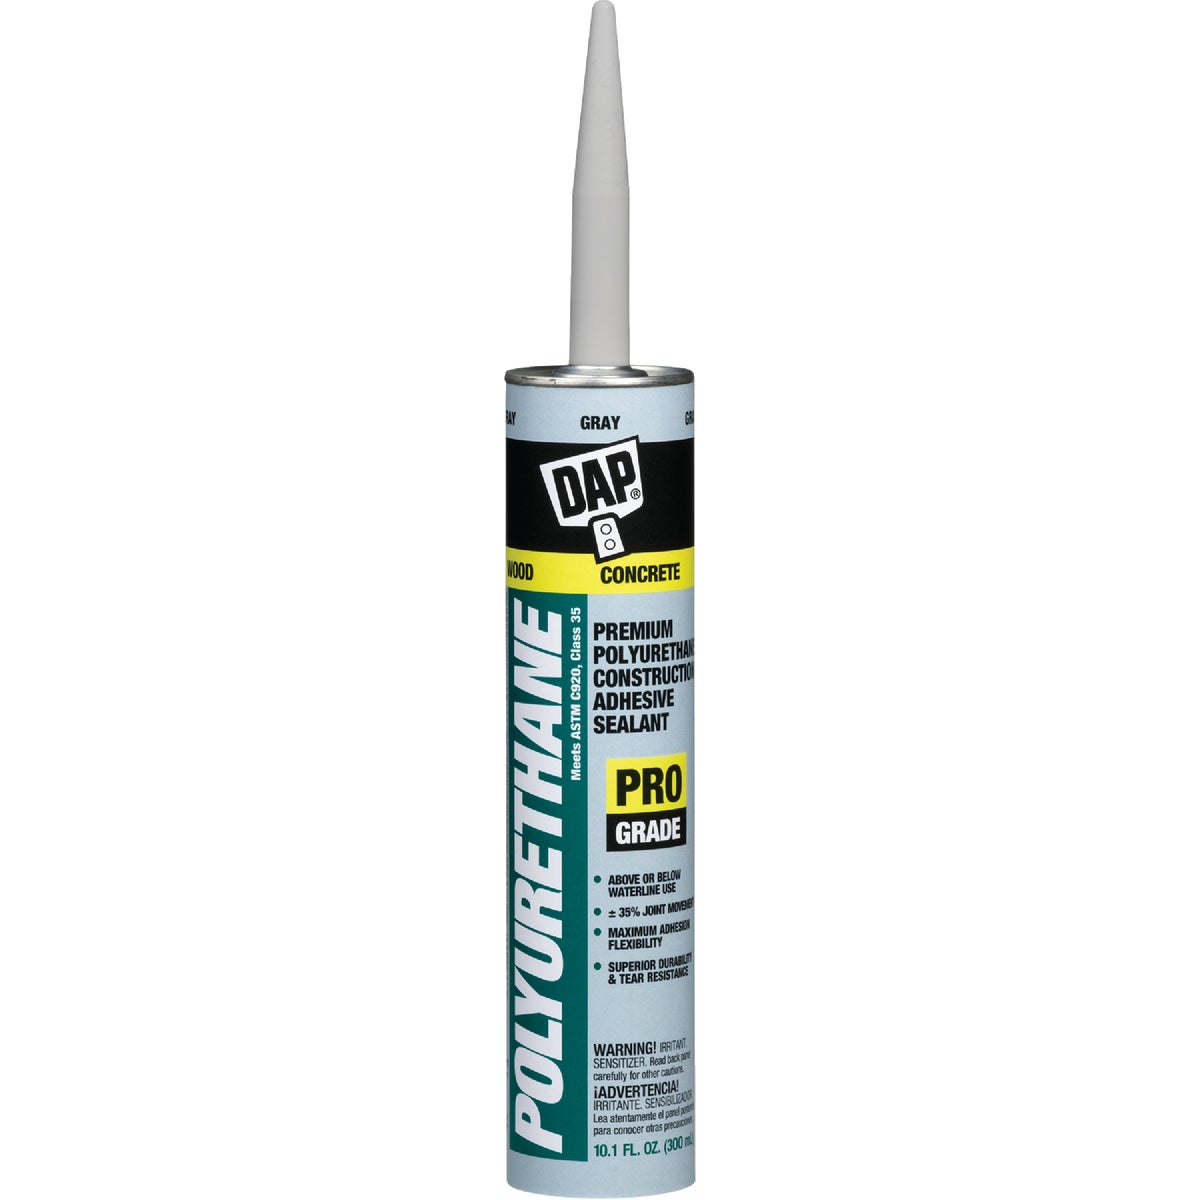 GRY POLYURETHANE SEALANT - 18814 by Dap Inc